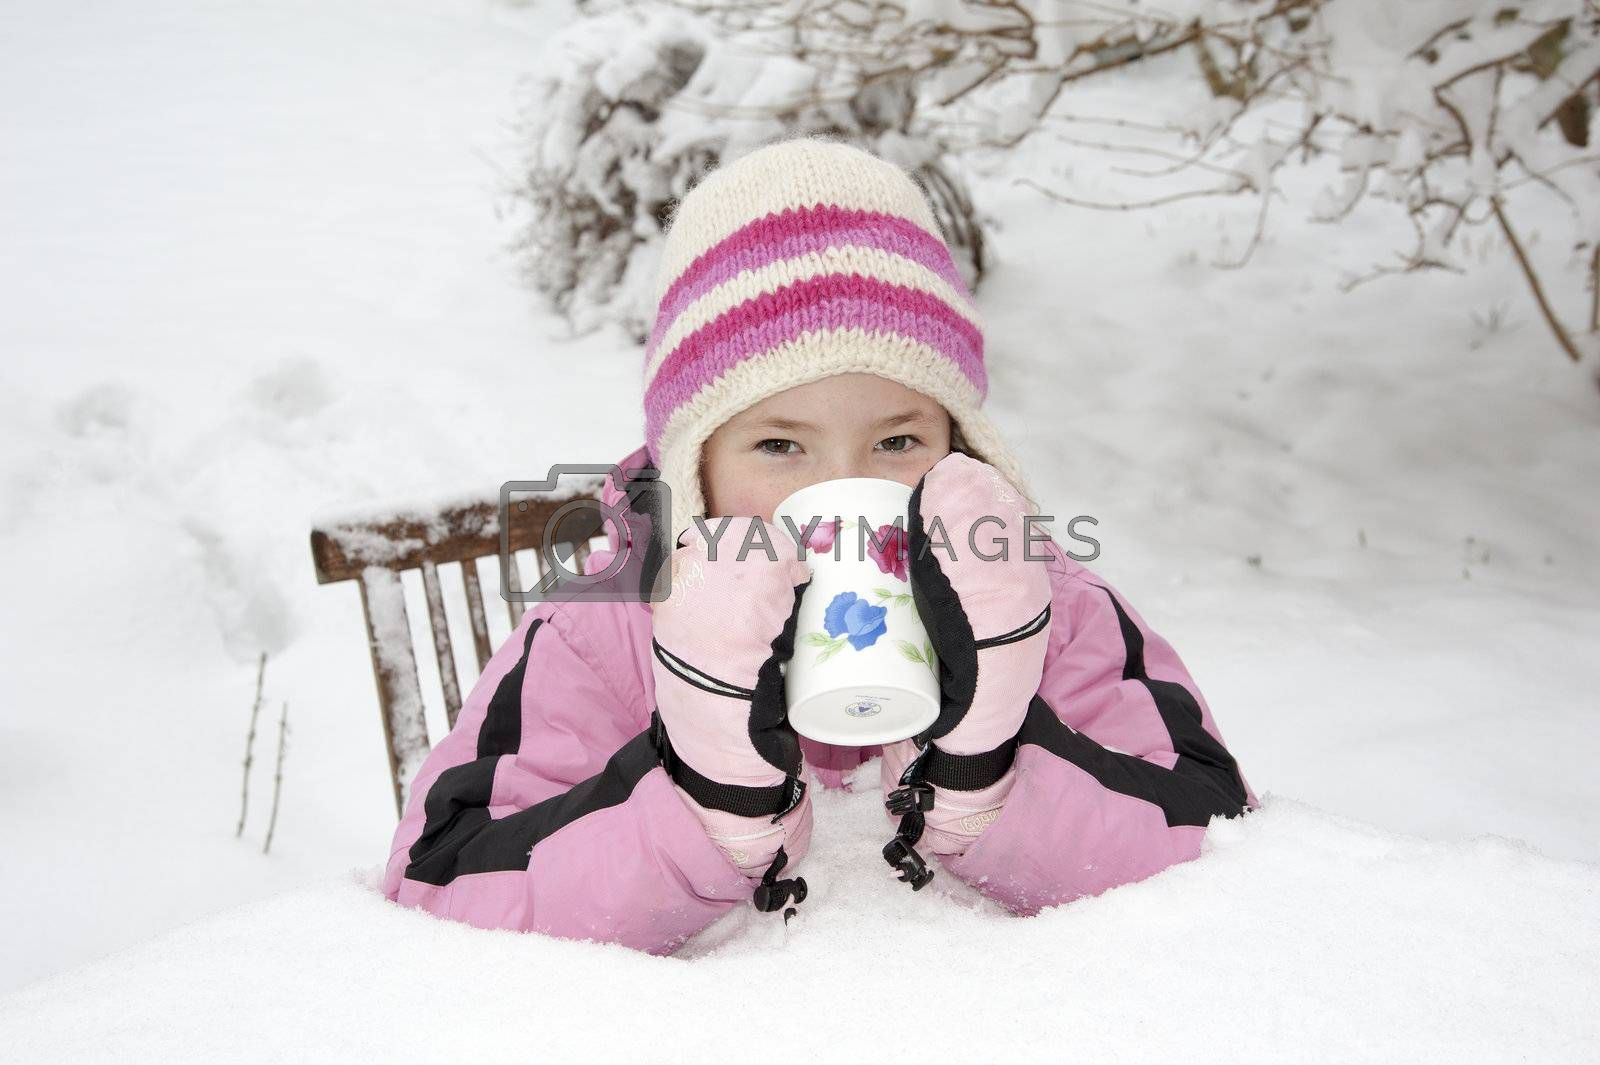 Winter snow in Hampshire UK and this little girl takes a break from snowballing for a hot drink seated on a garden chair